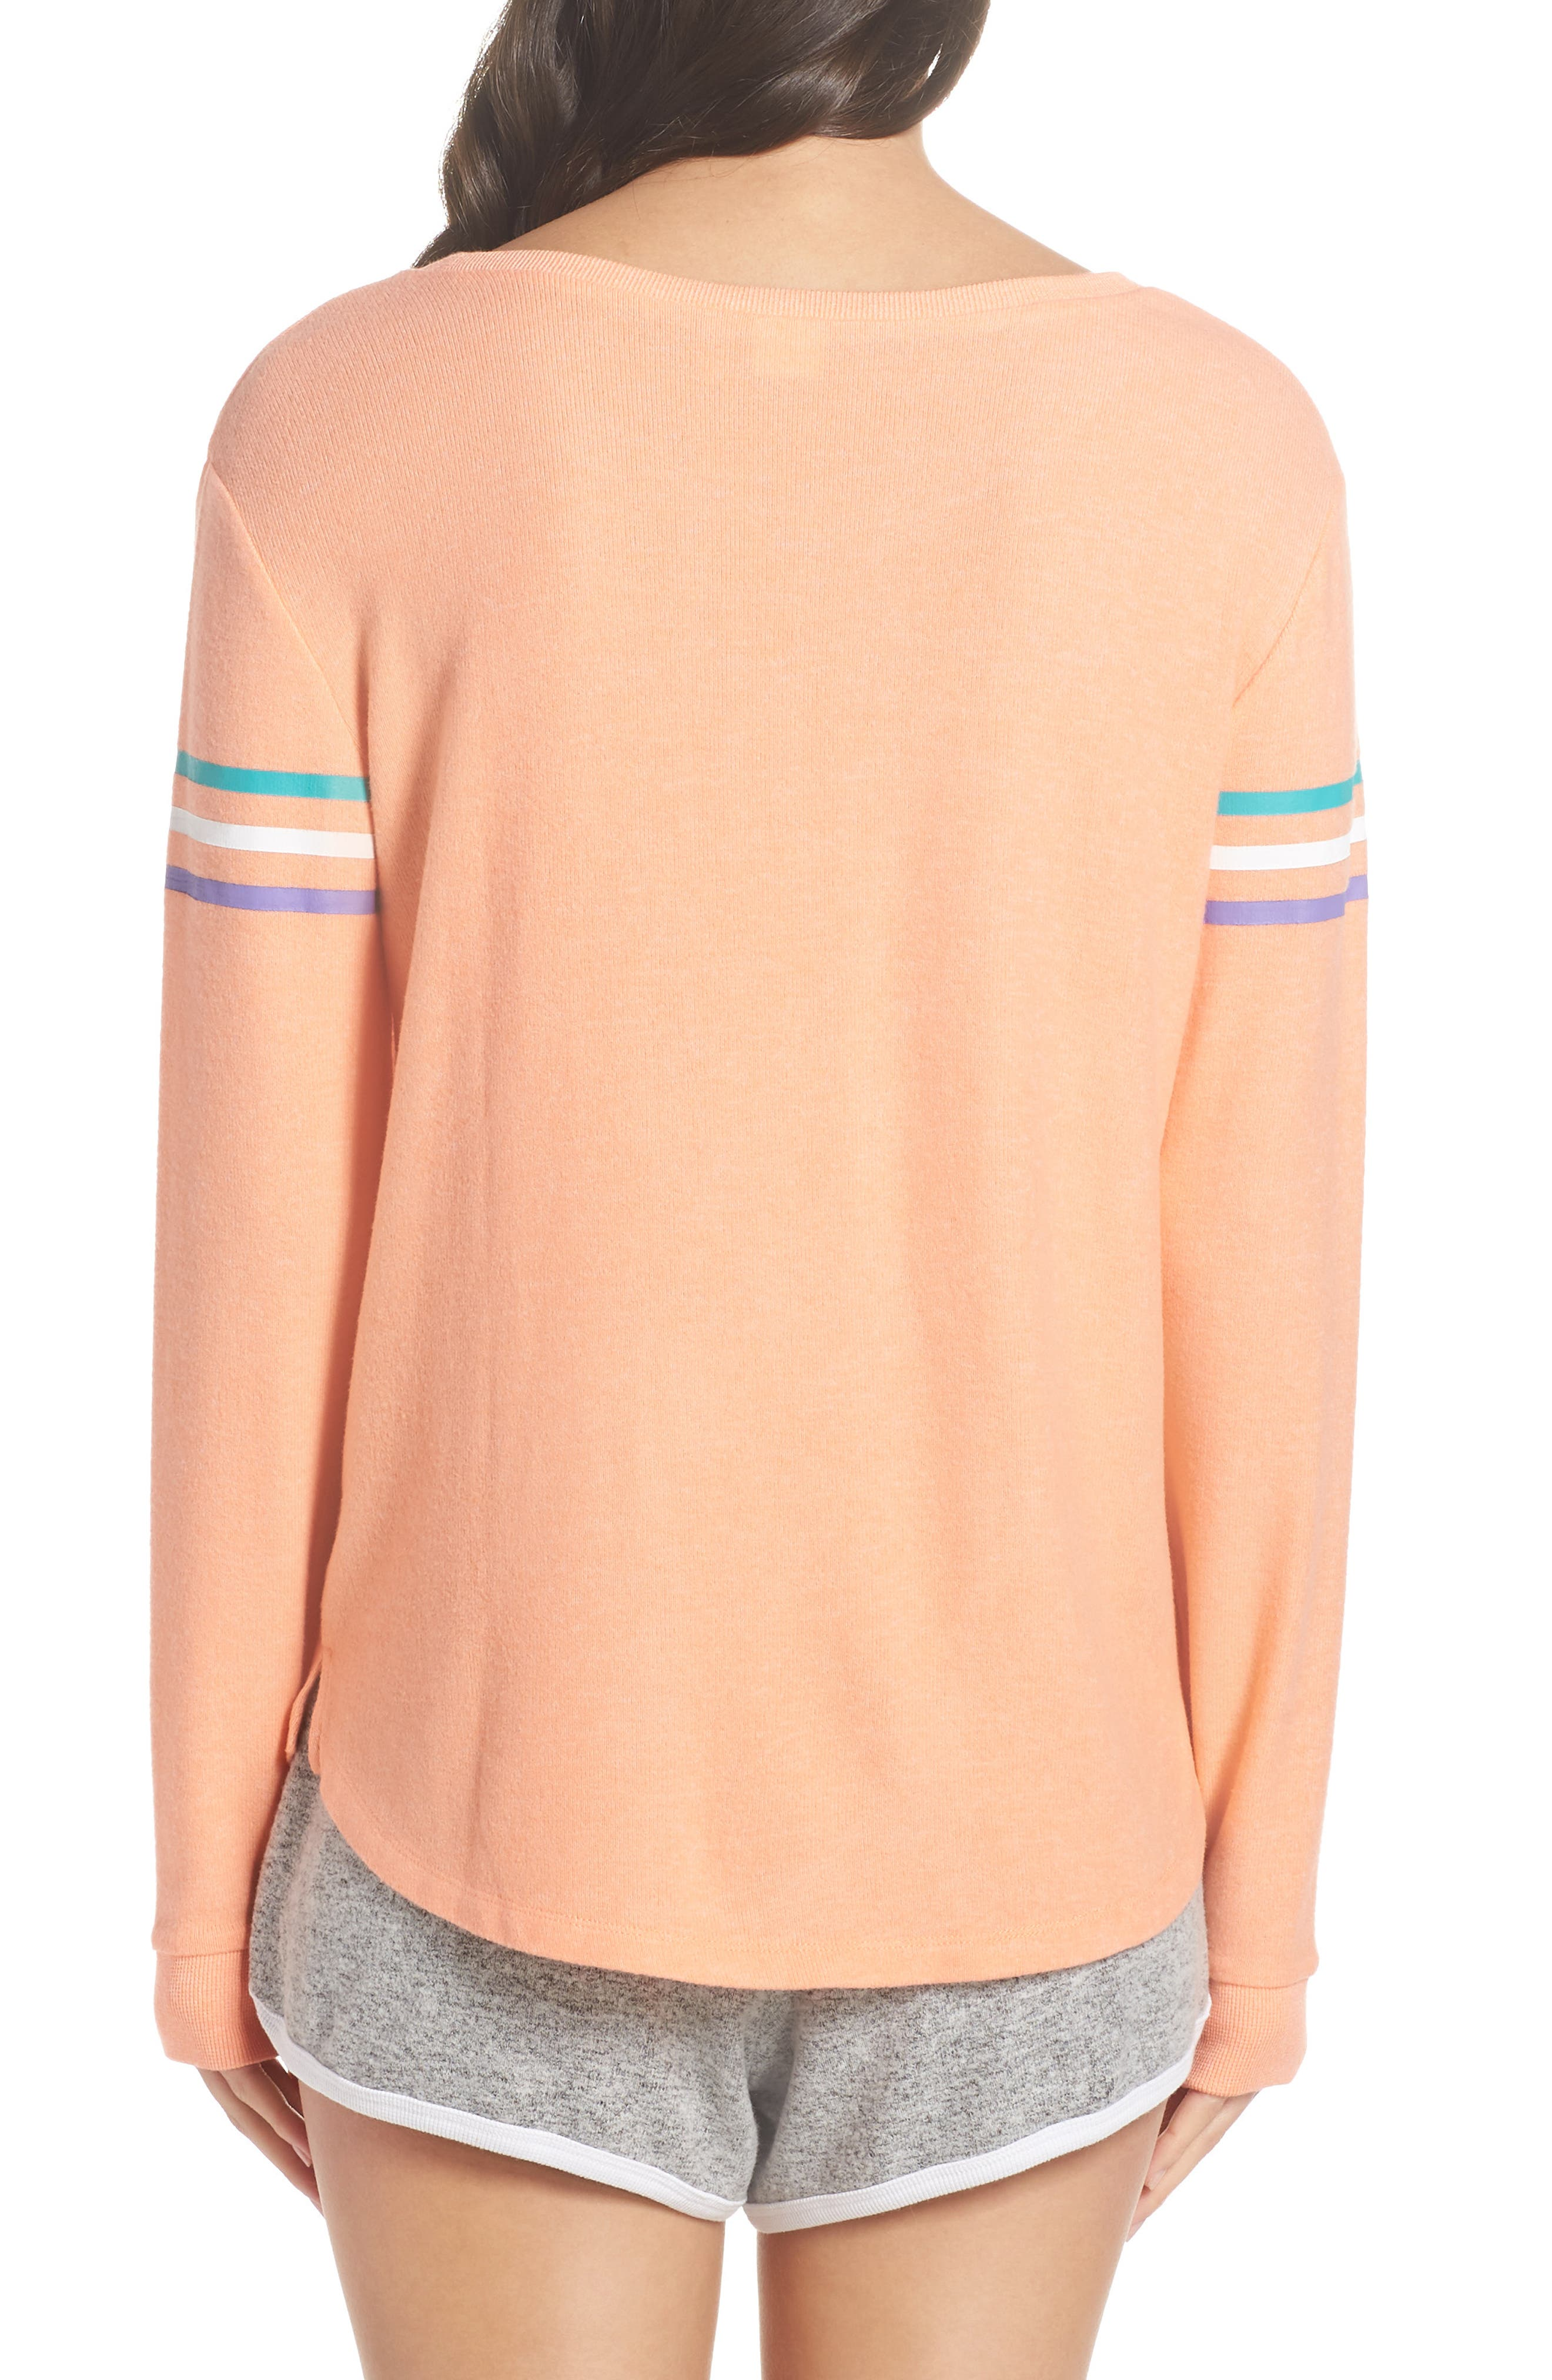 Too Cool Pullover,                             Alternate thumbnail 2, color,                             Coral Pink